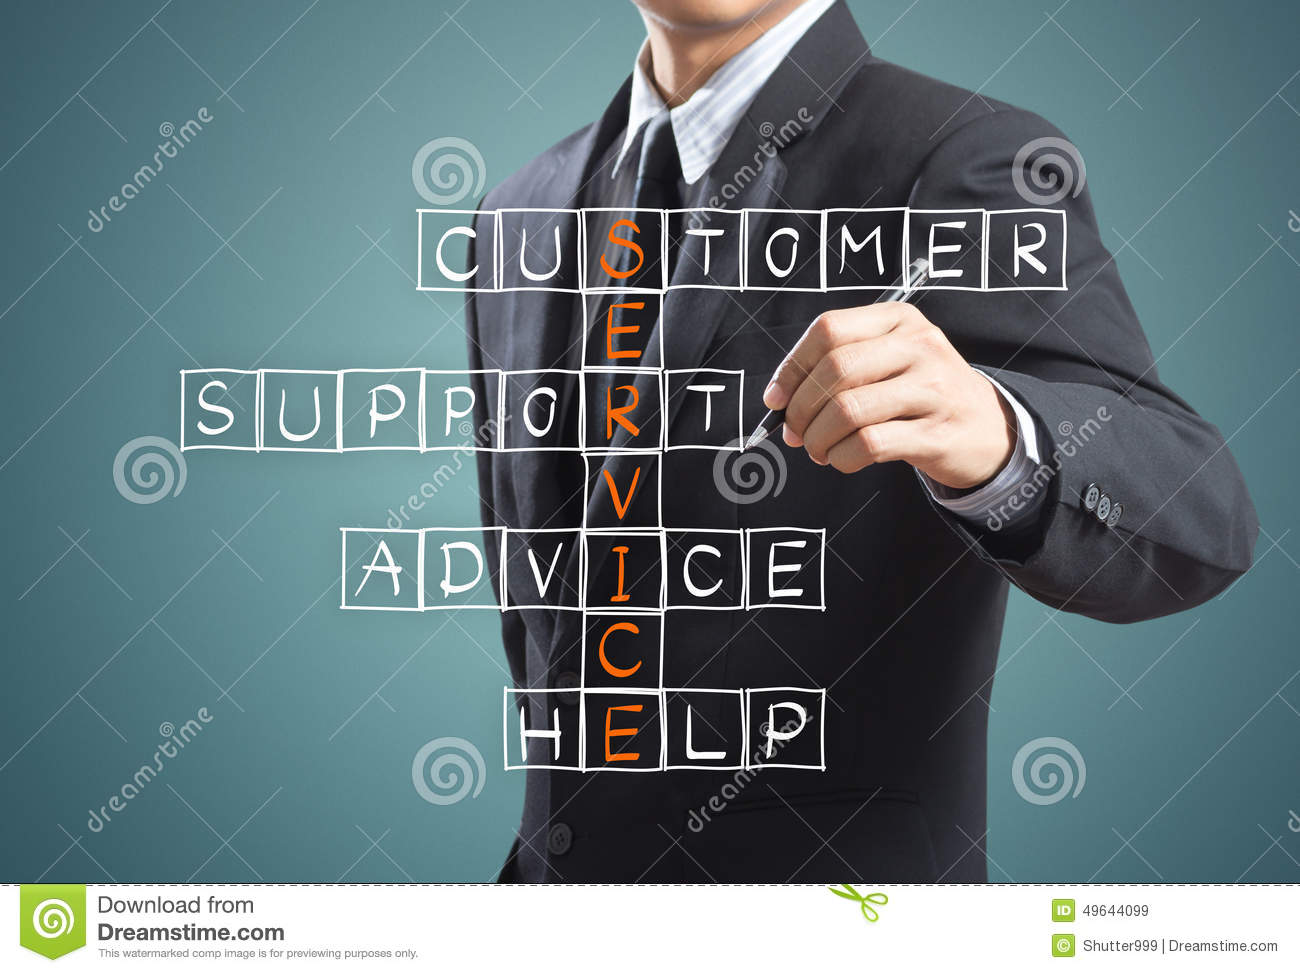 customer service essay business In this essay, i am going to describe the importance of customer service, and then i am going to talk about how customer service works in the system follow that i want to focus on the analysis on how to use this method to make companies to achieve success.